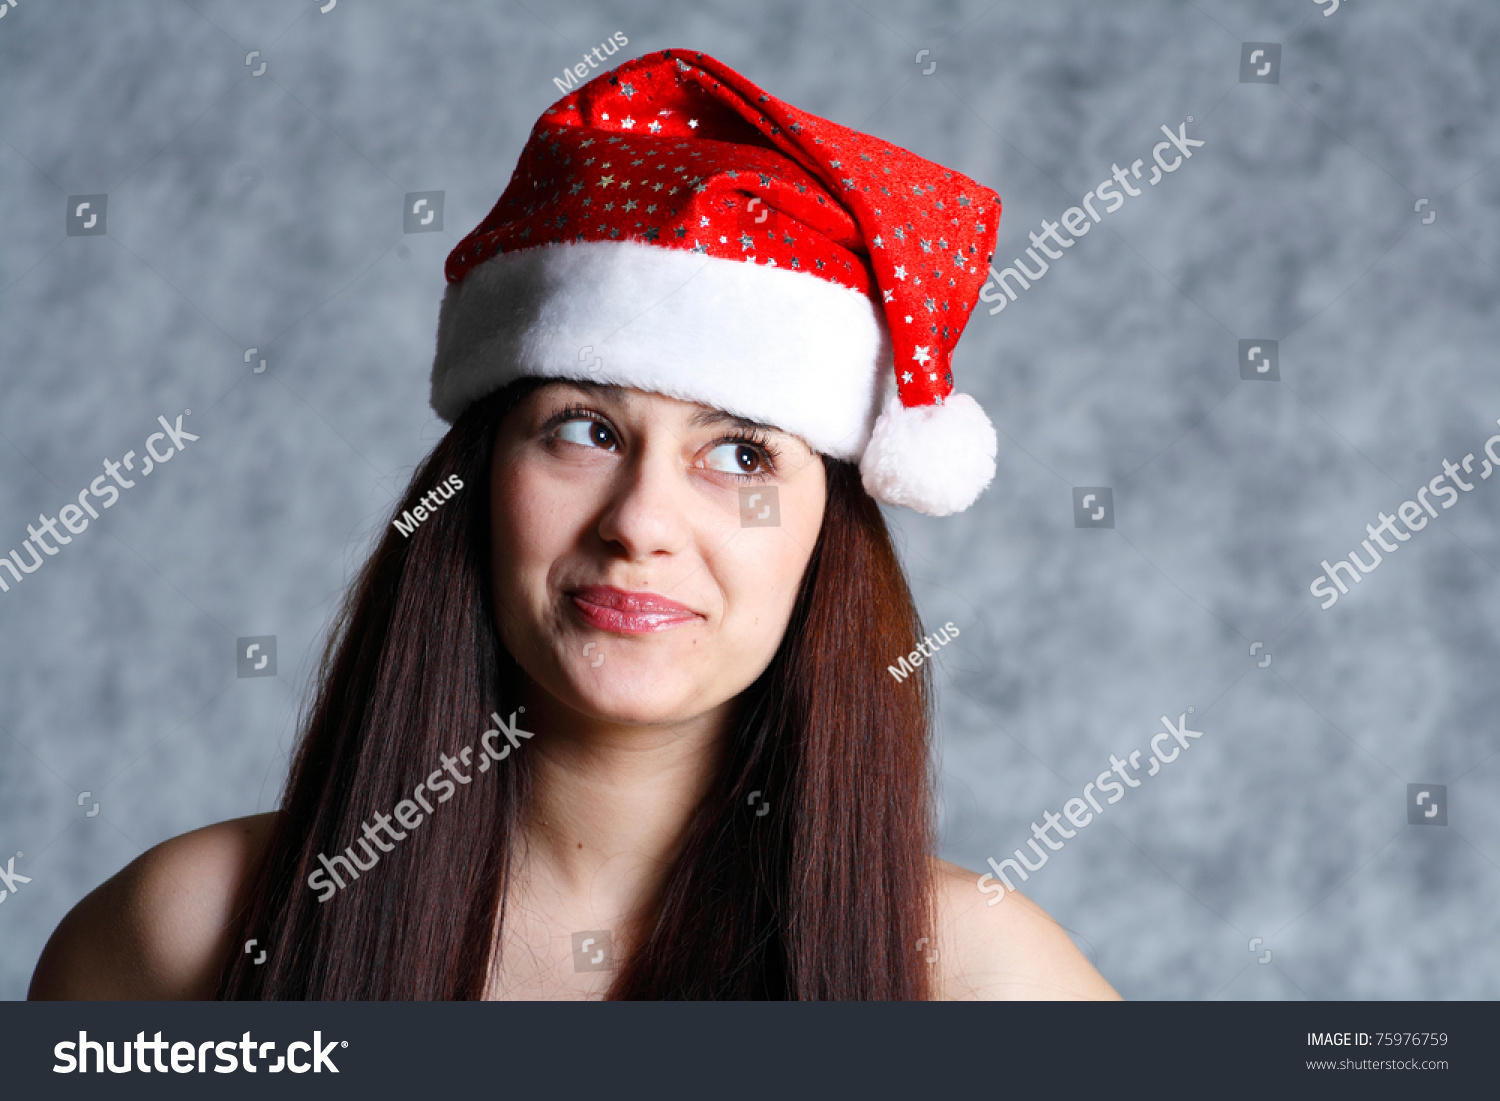 stock-photo-mrs-santa-young-years-brunet